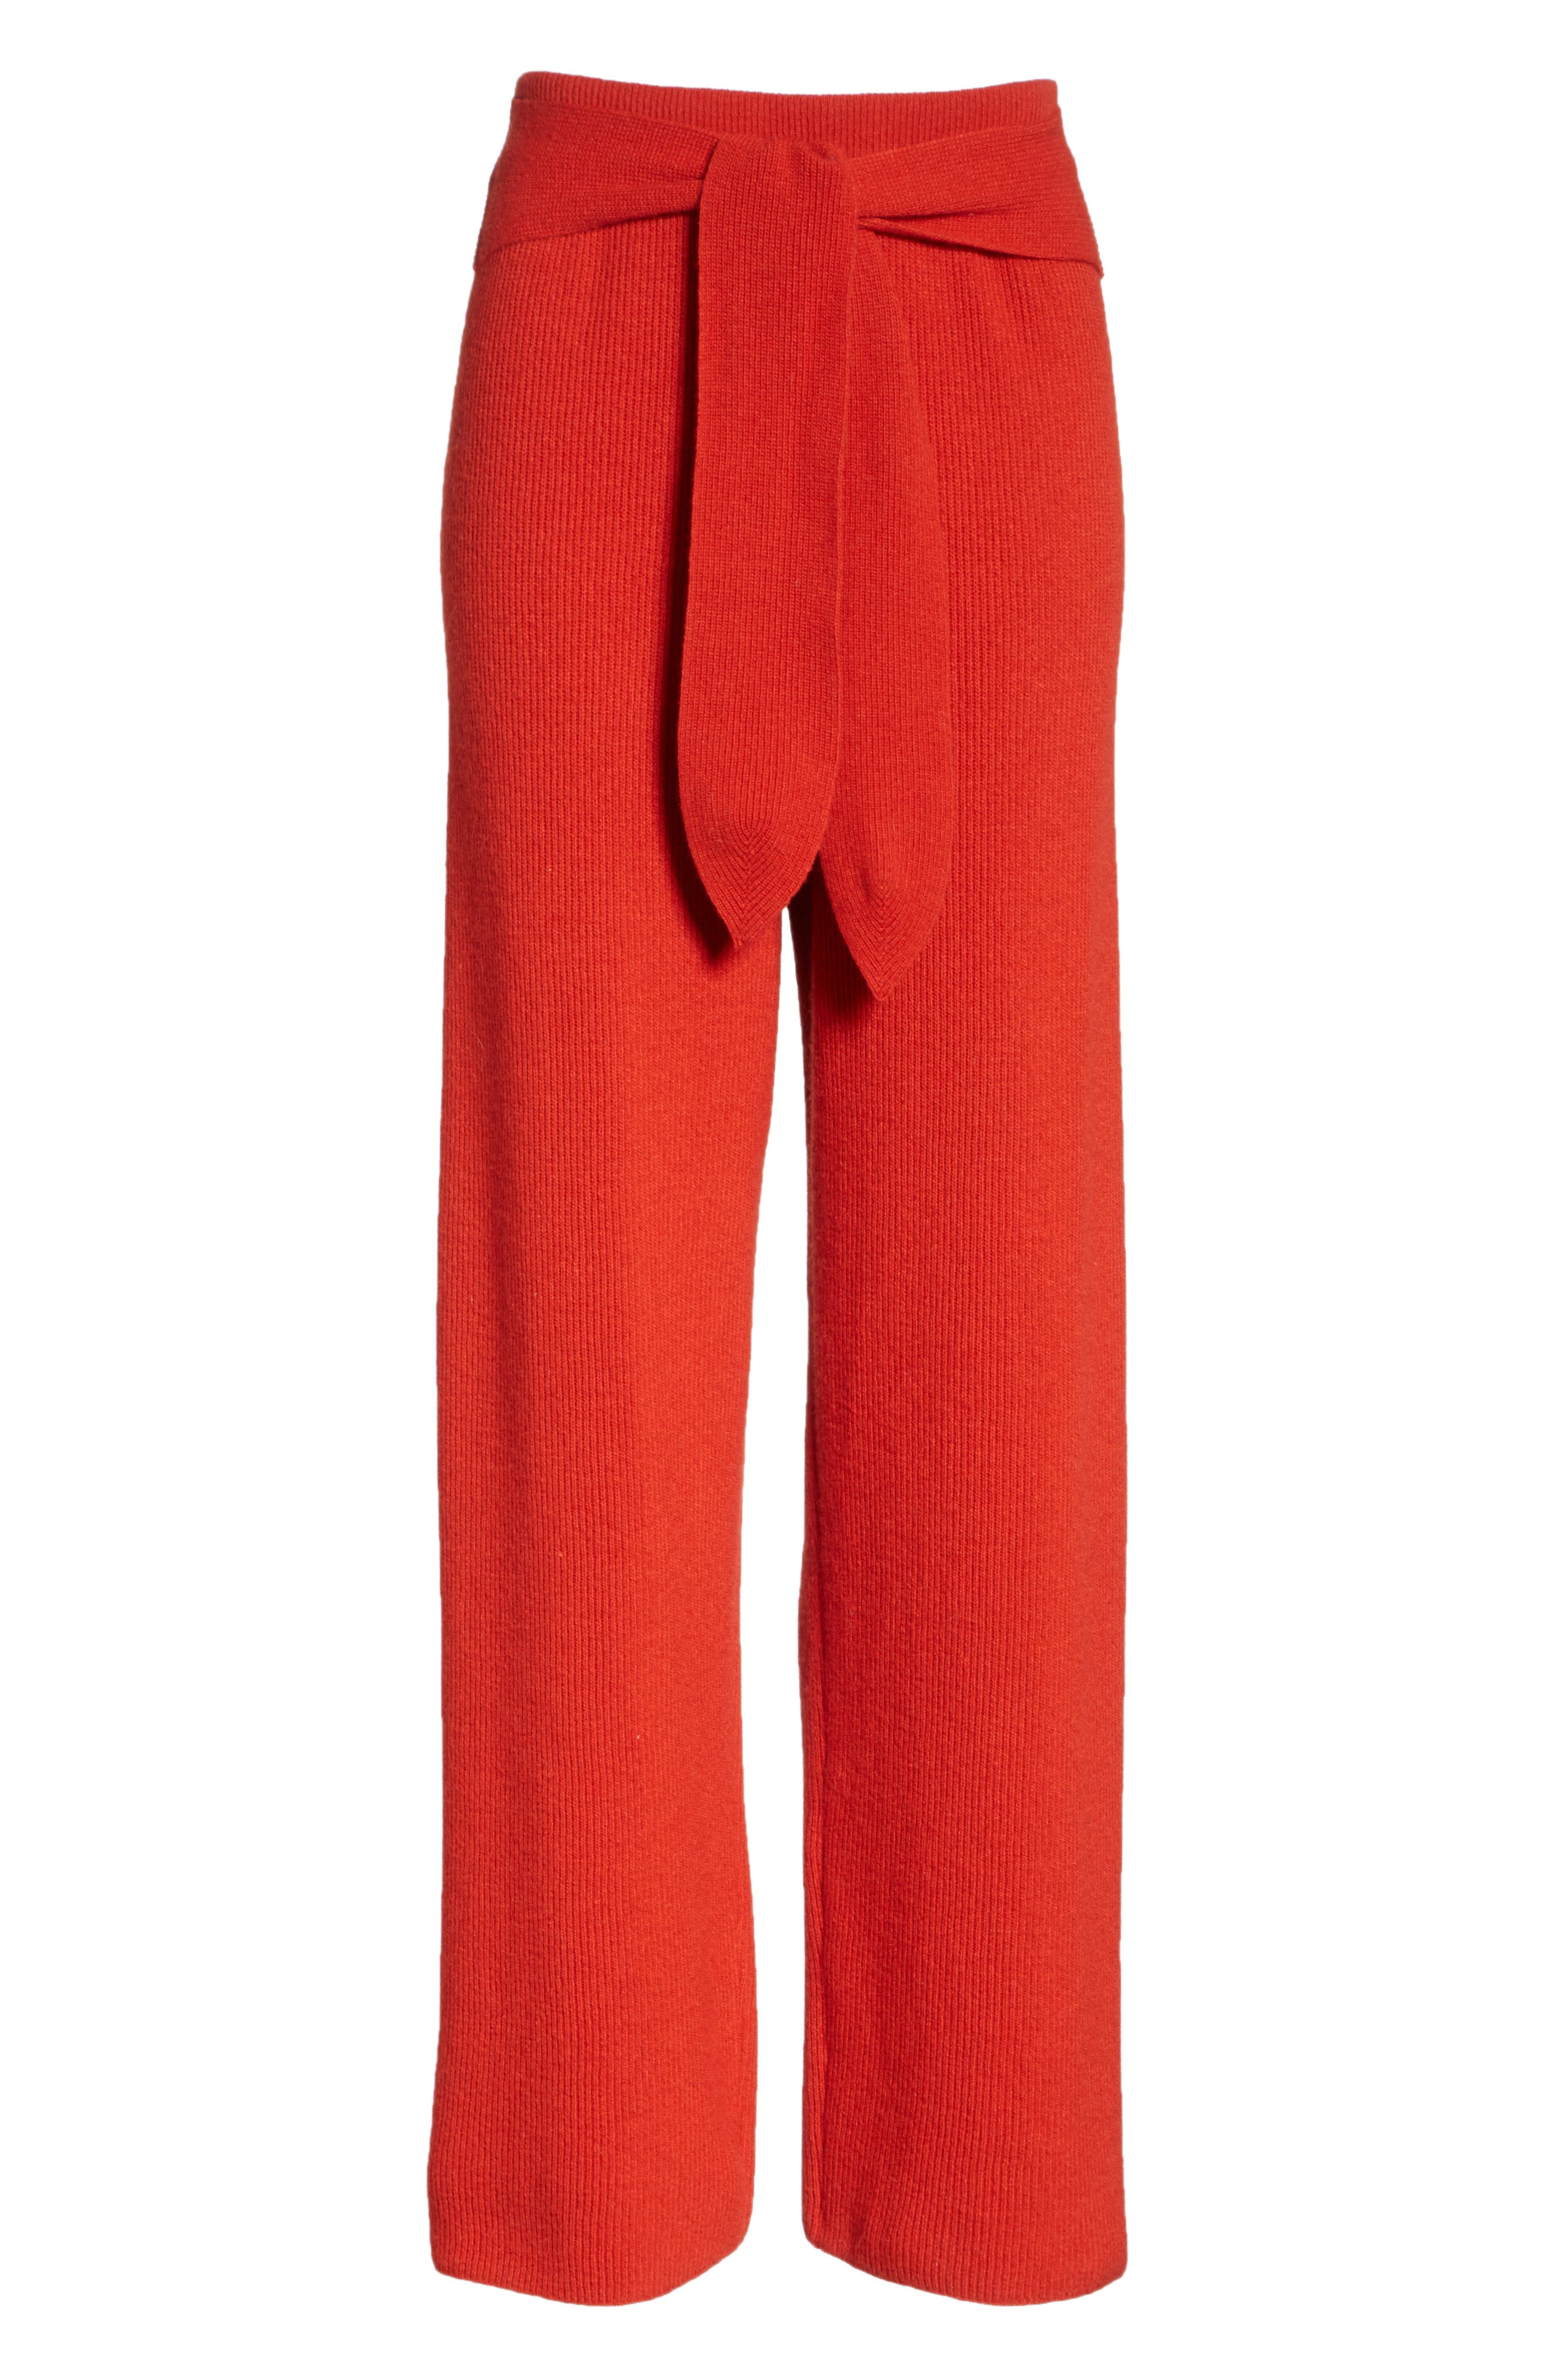 Tigre Merino Wool & Cashmere Blend Pants,                             Alternate thumbnail 6, color,                             RED